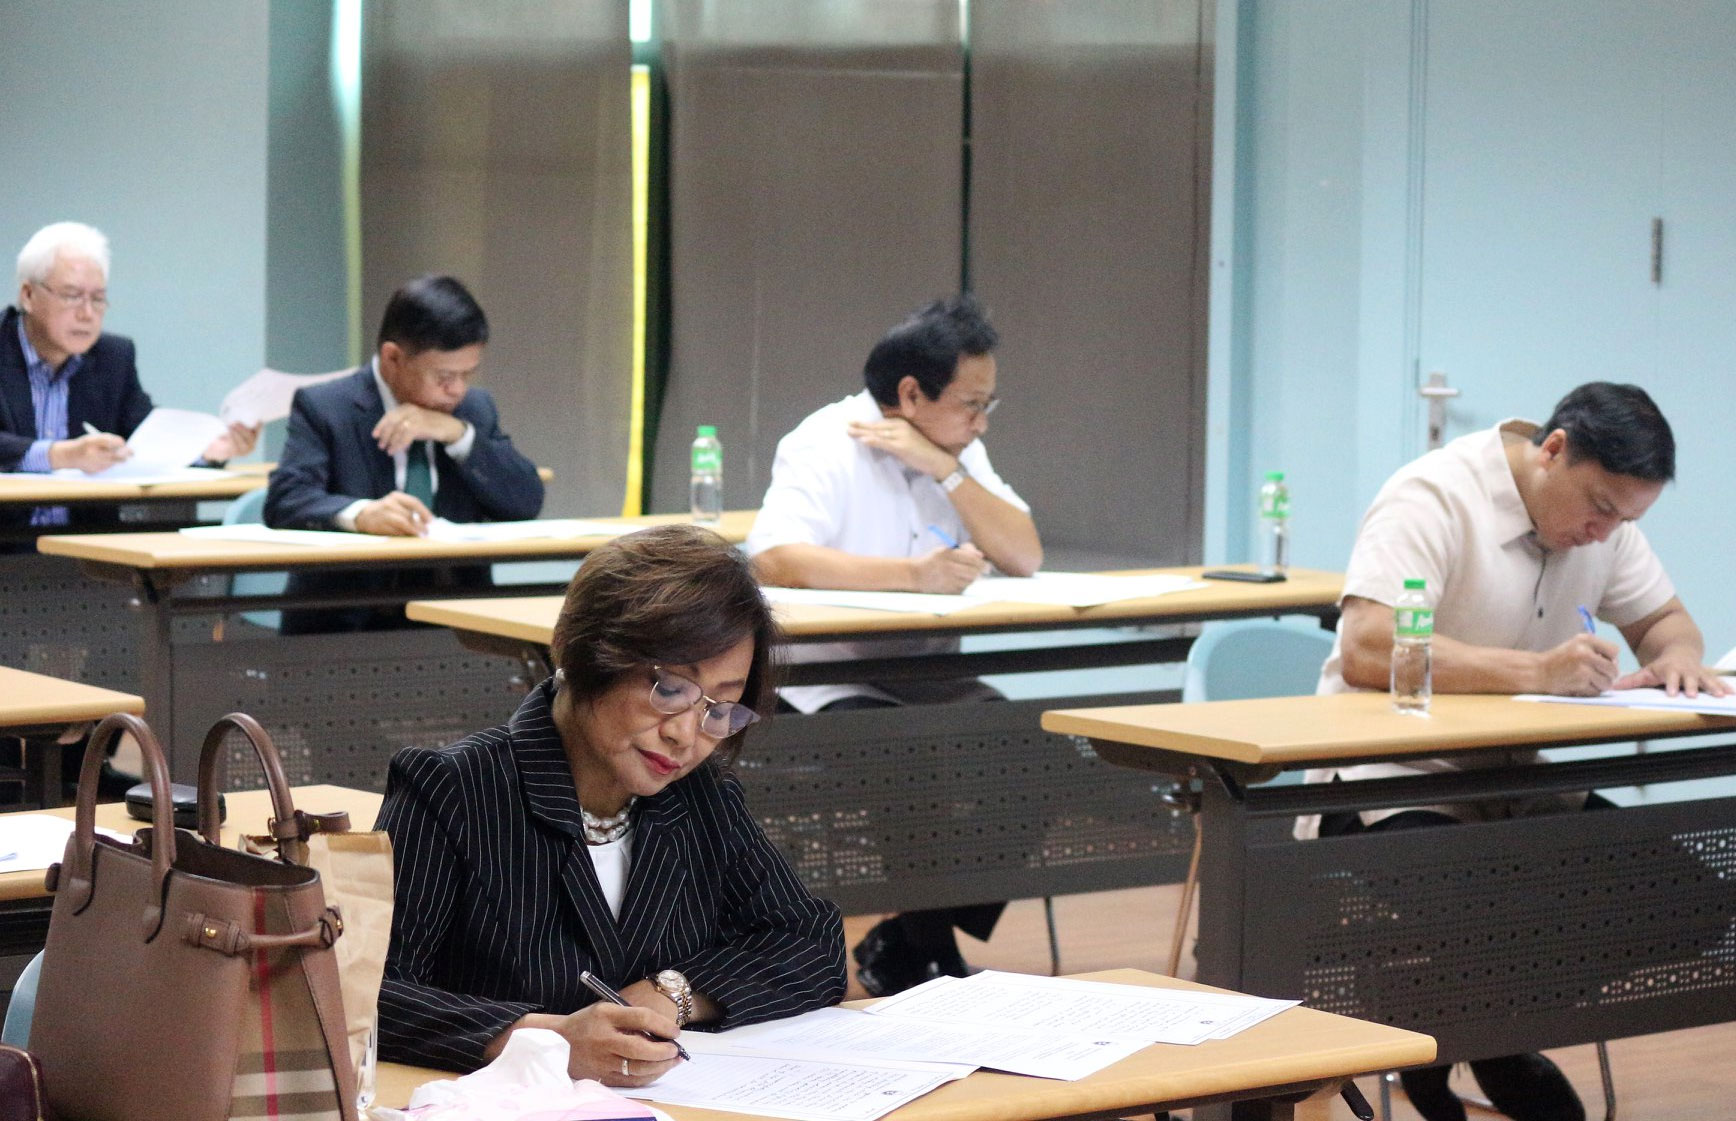 LOOK: Justices take essay-writing exam for Supreme Court